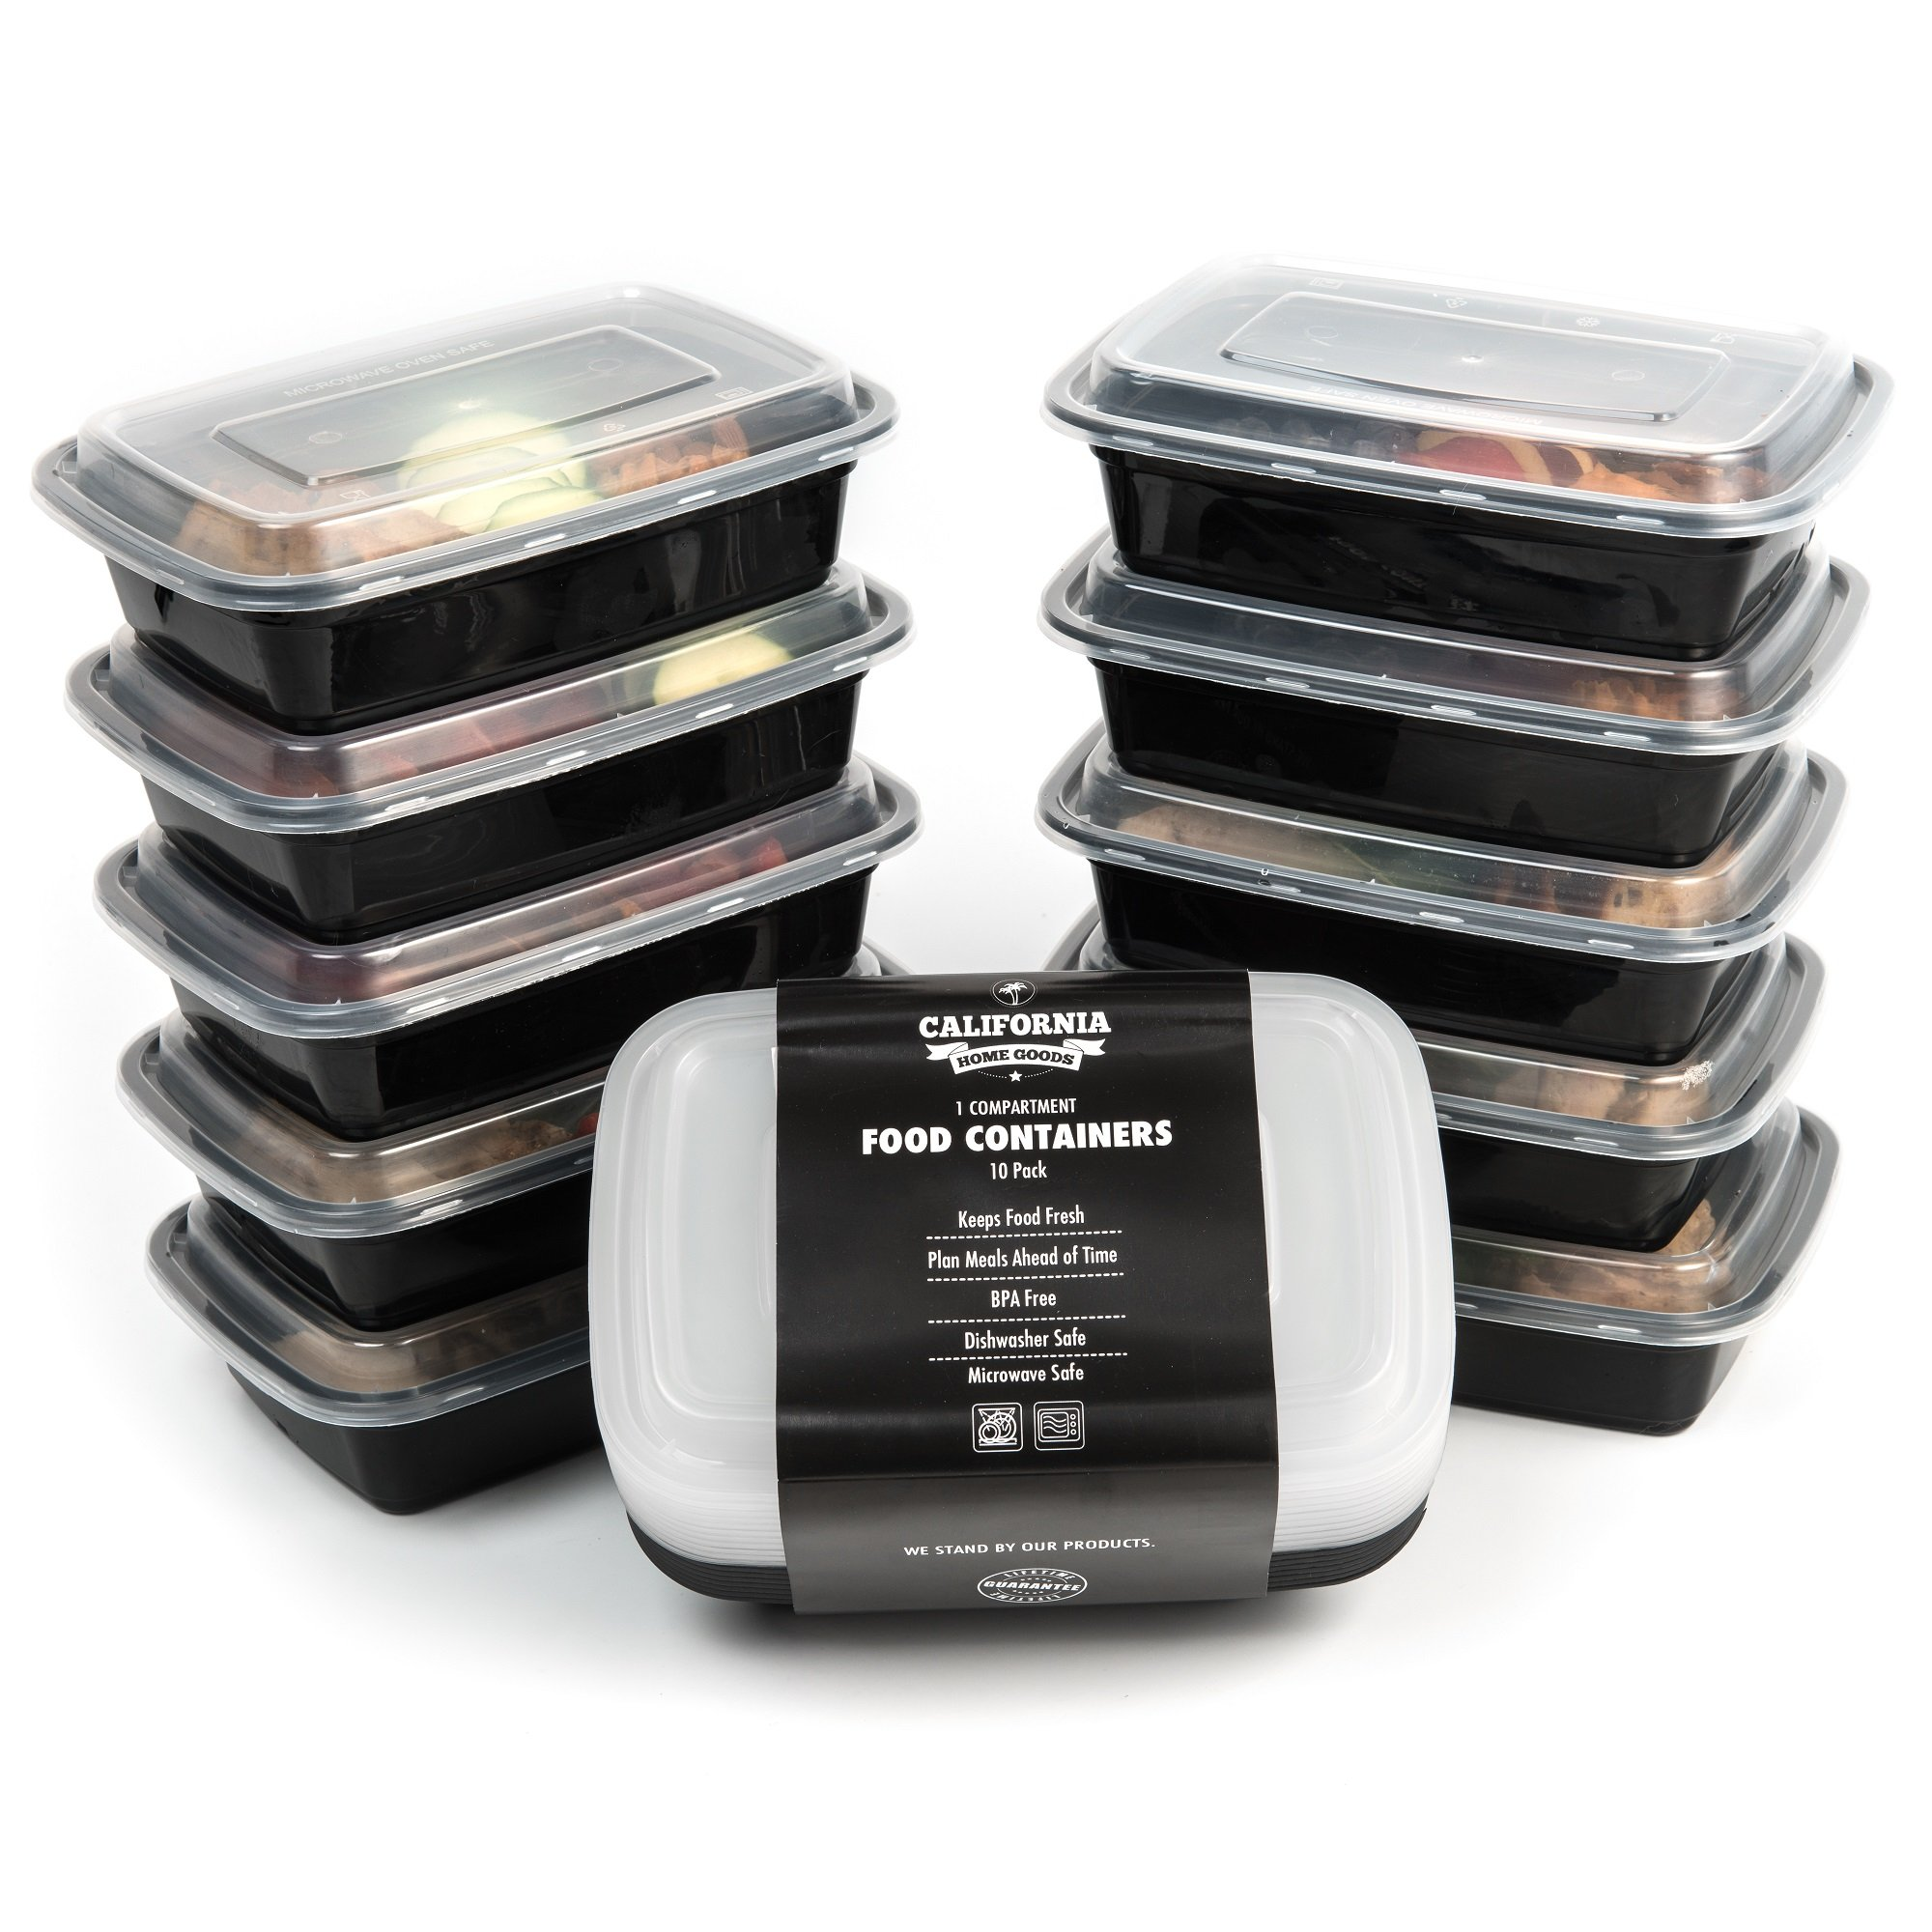 Reusable Food Containers, 1 Compartment Lunch Containers, Meal Prep Container, 10 Pack Meal Prep Containers, Stackable Meal Storage Containers, Plastic Meal Prep Containers, Meal Containers With Lids